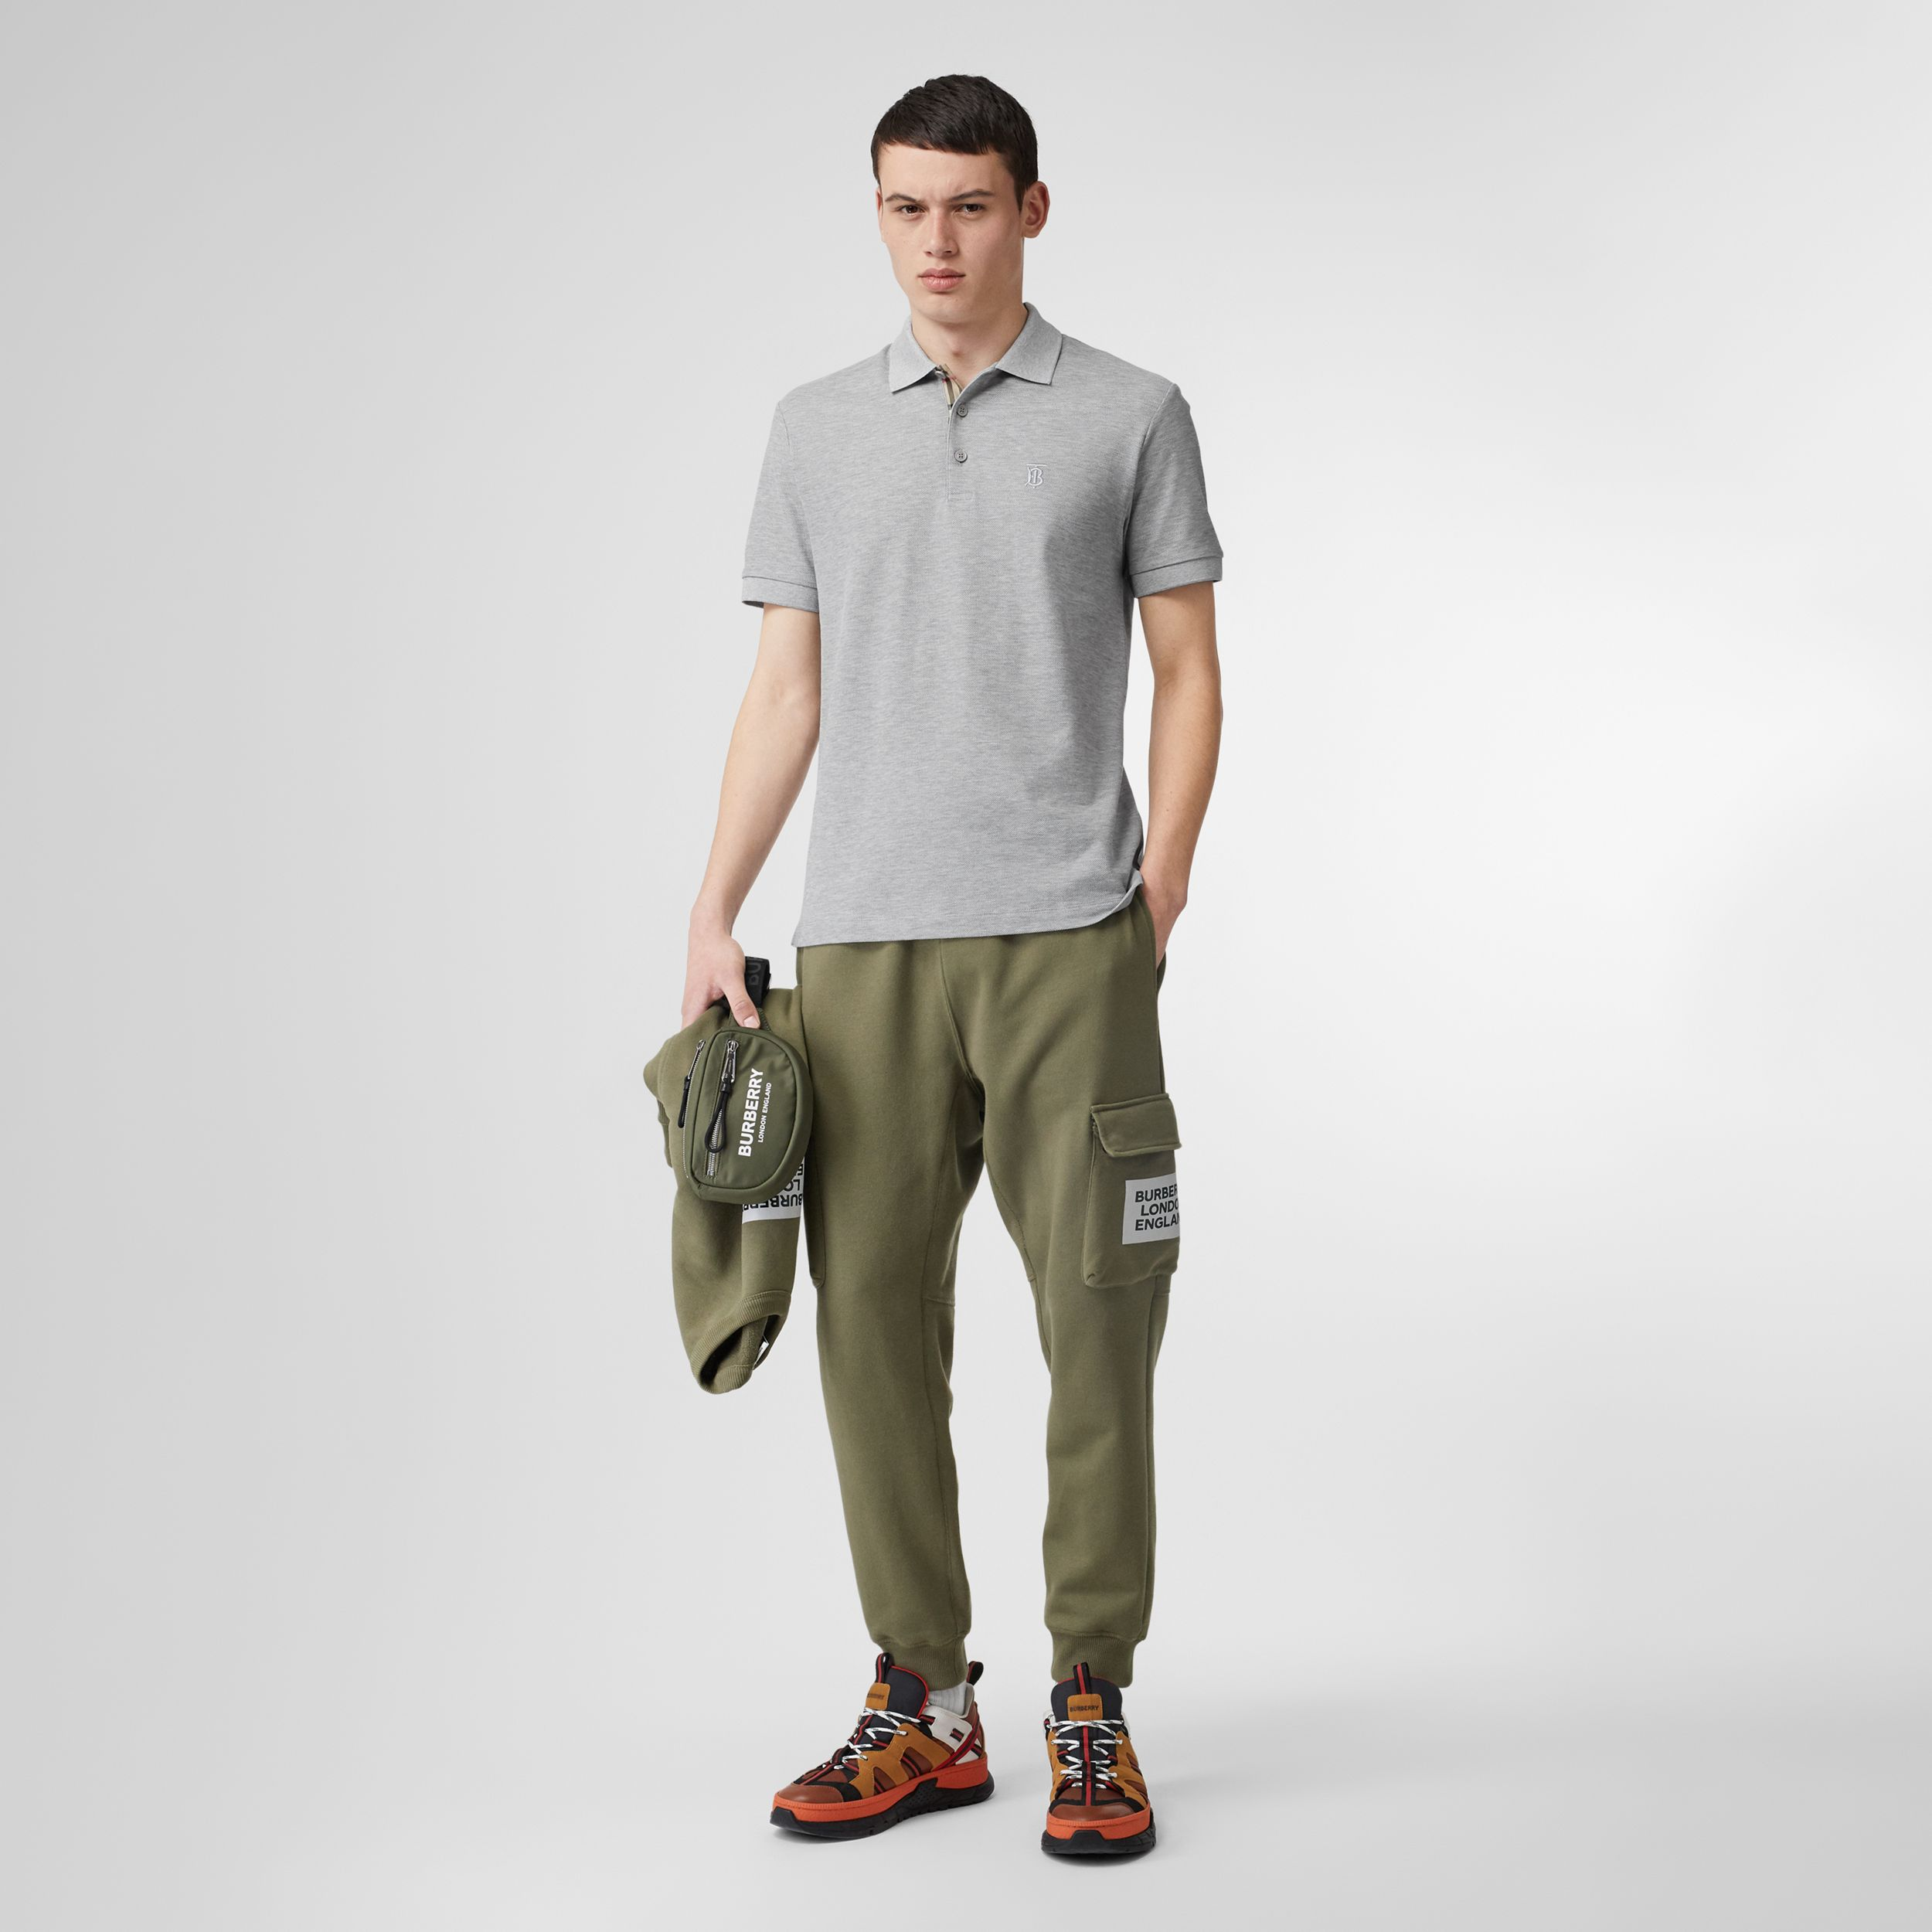 Monogram Motif Cotton Piqué Polo Shirt in Pale Grey Melange - Men | Burberry Australia - 1